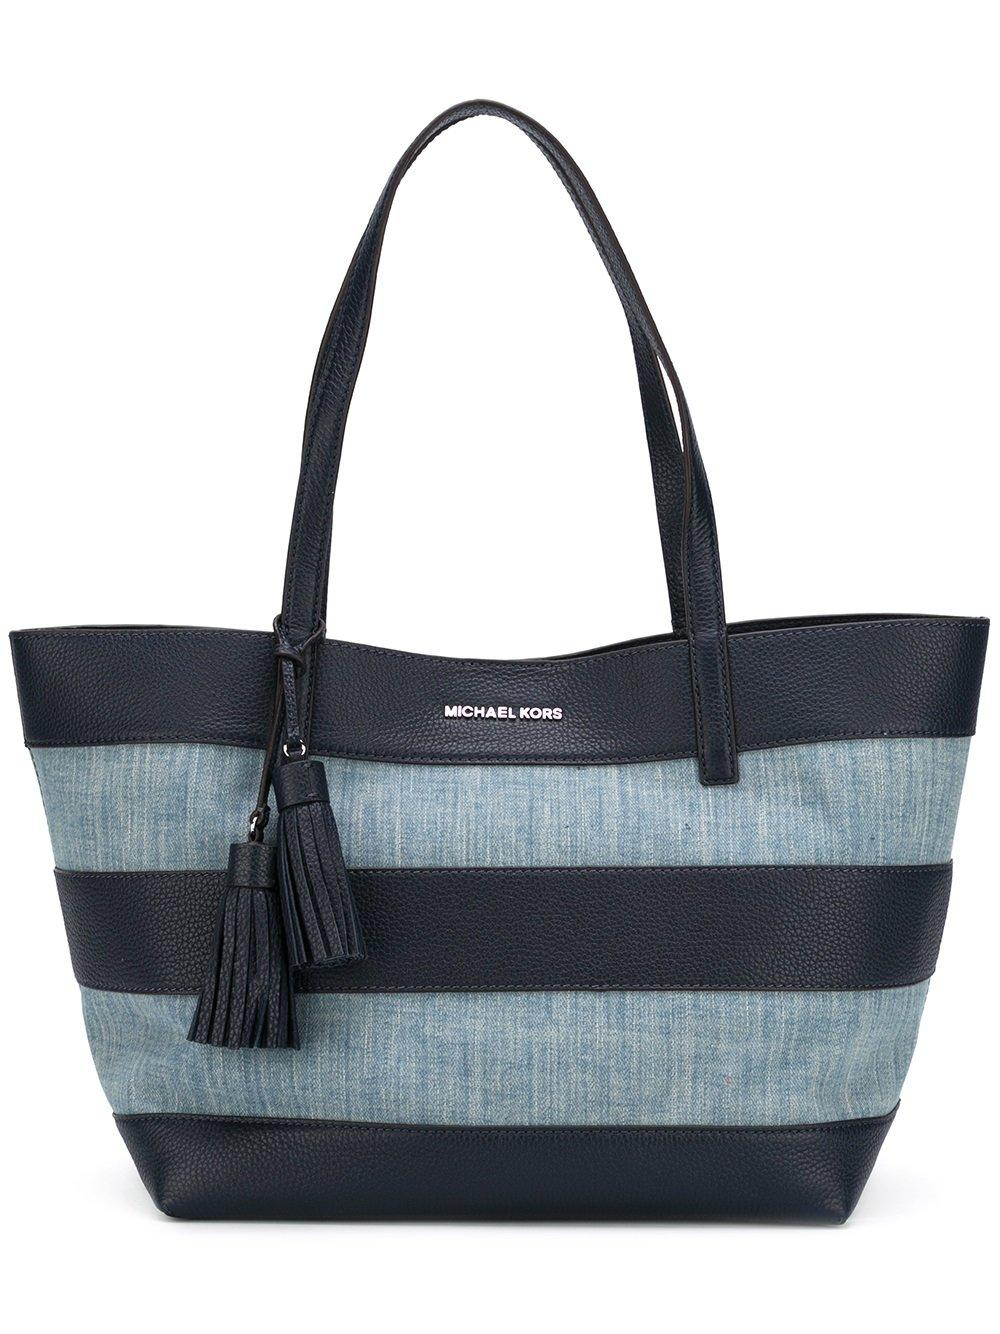 michael michael kors striped shopper tote in blue lyst. Black Bedroom Furniture Sets. Home Design Ideas